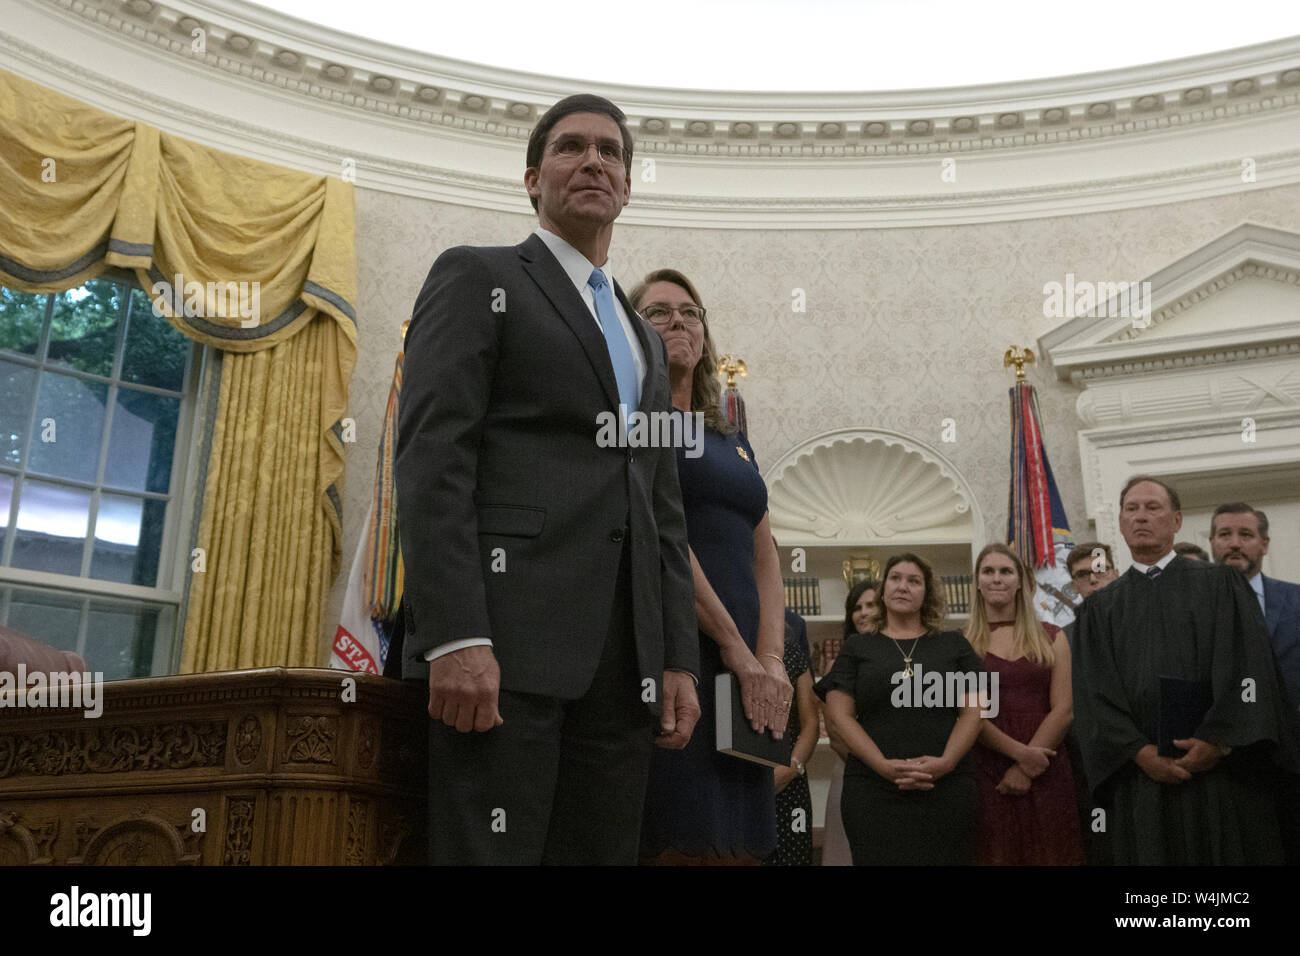 Washington, District of Columbia, USA. 23rd July, 2019. Dr. Mark Esper stands with his wife Leah prior to his swearing in as United States Secretary of Defense in an Oval Office ceremony at the White House in Washington, DC, U.S. on July 23, 2019. Credit: Stefani Reynolds/CNP/ZUMA Wire/Alamy Live News Stock Photo